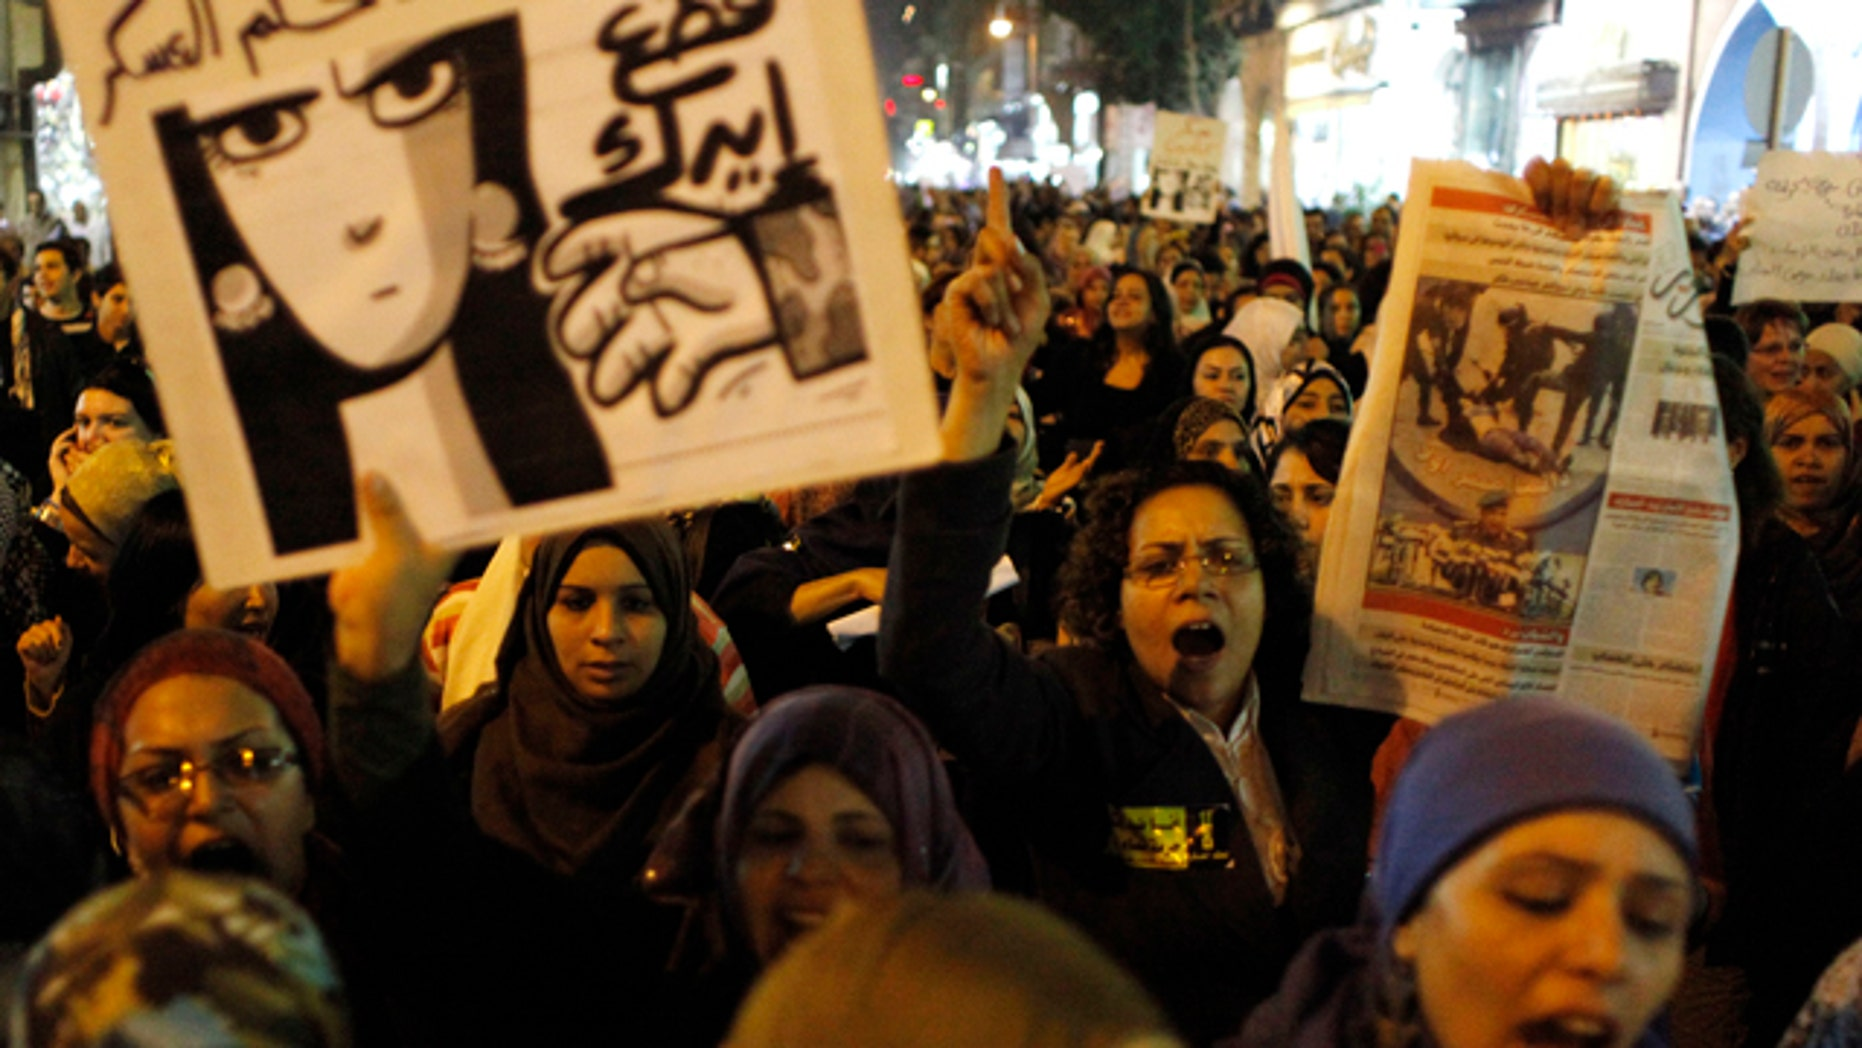 """Dec. 20, 2011: Egyptian women angered by the recent violence used against them in clashes between army soldiers and protesters, one carrying a poster that reads in Arabic """"Down with military rule, Military are liars and We will cut your hand"""" chant anti military slogans during rally that ended in Tahrir Square, Cairo, Egypt."""